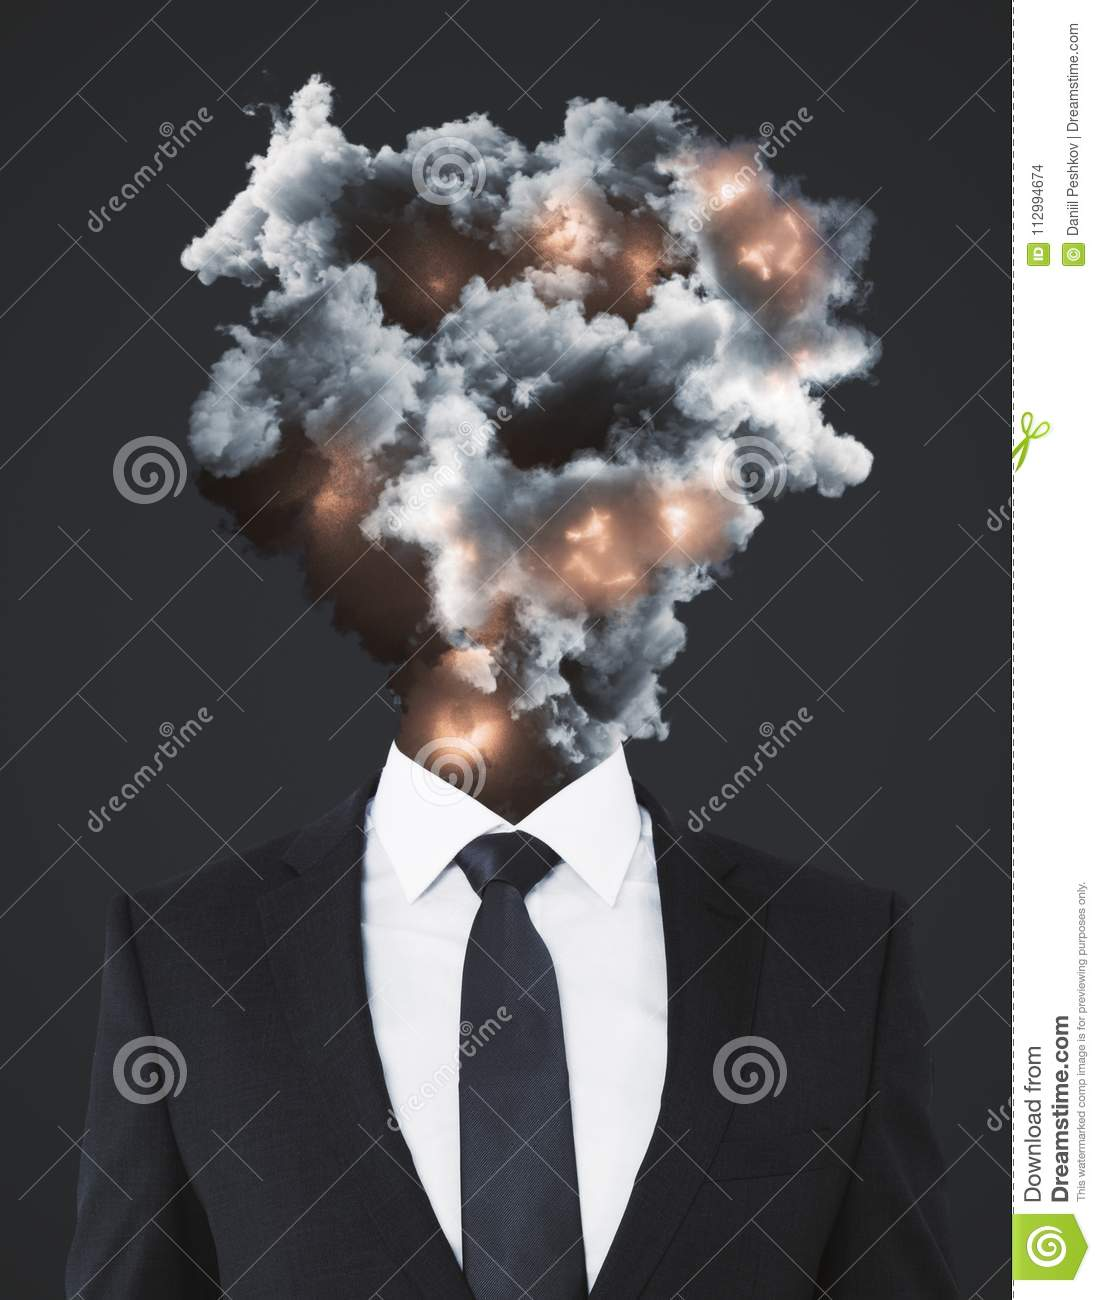 Man with abstract explosion smoke and fire head standing on dark wallpaper. Disaster and stress concept